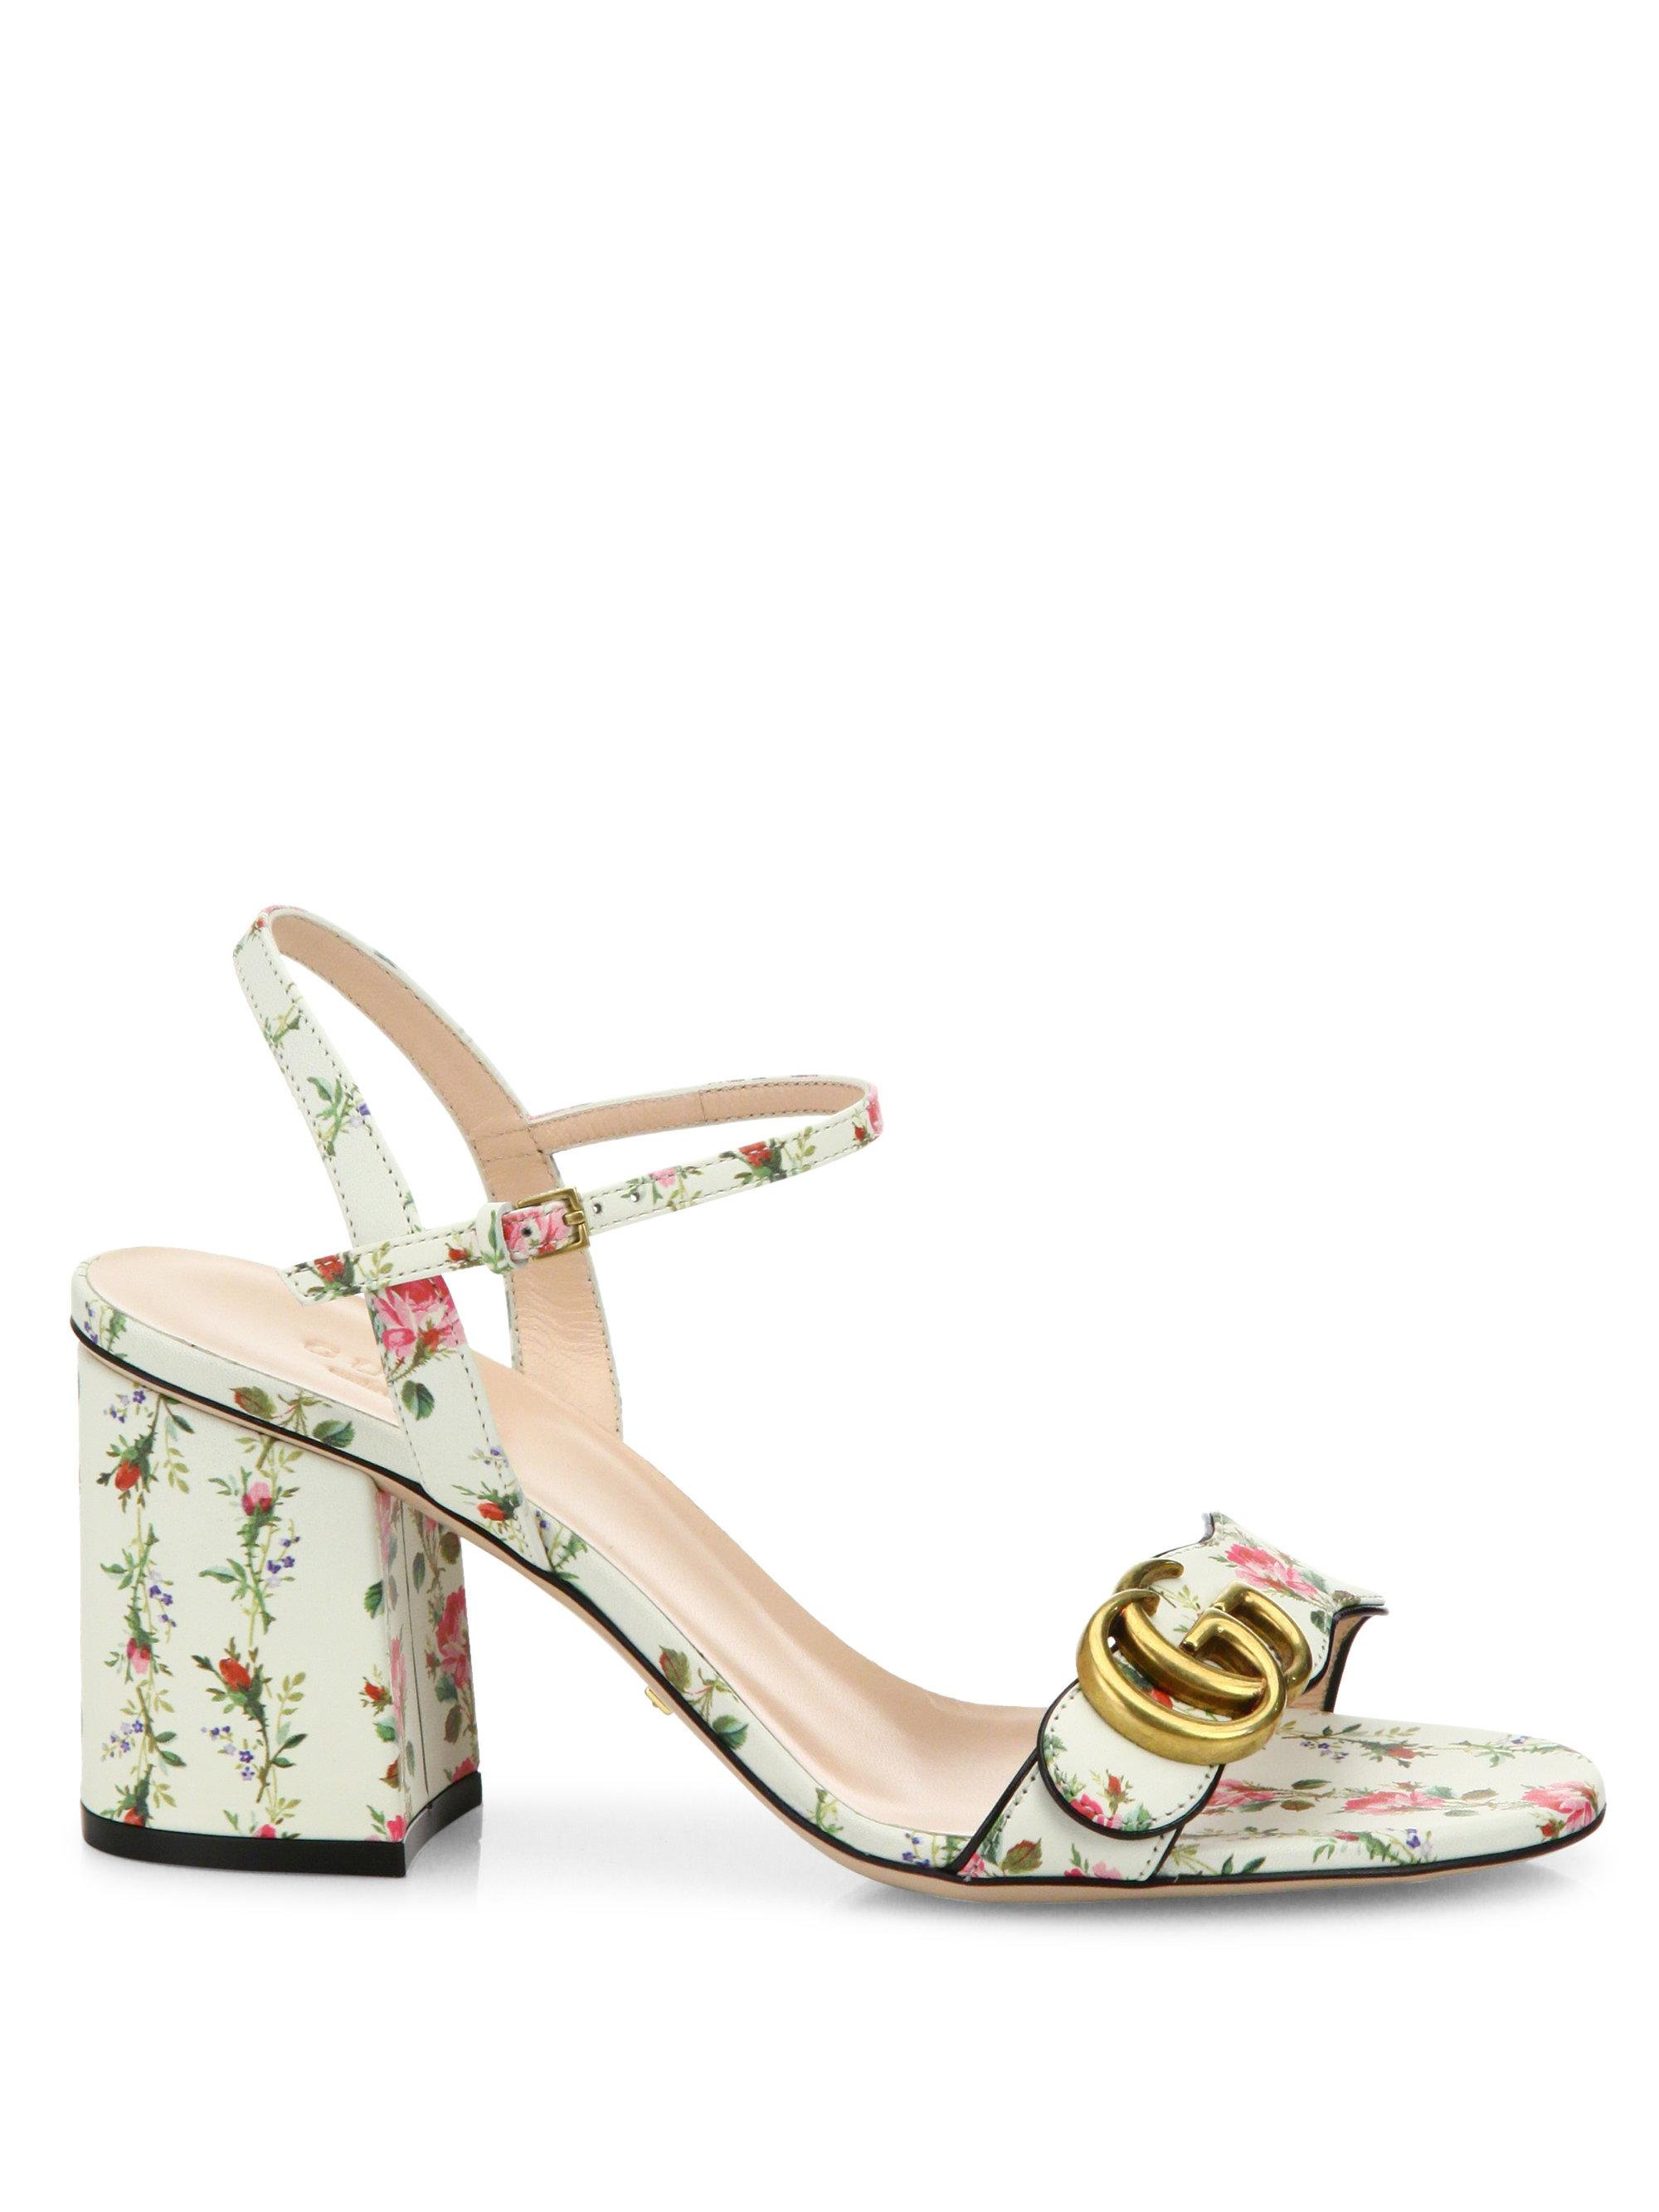 4a338ed91a3 Lyst - Gucci Floral-print Leather Sandals in White